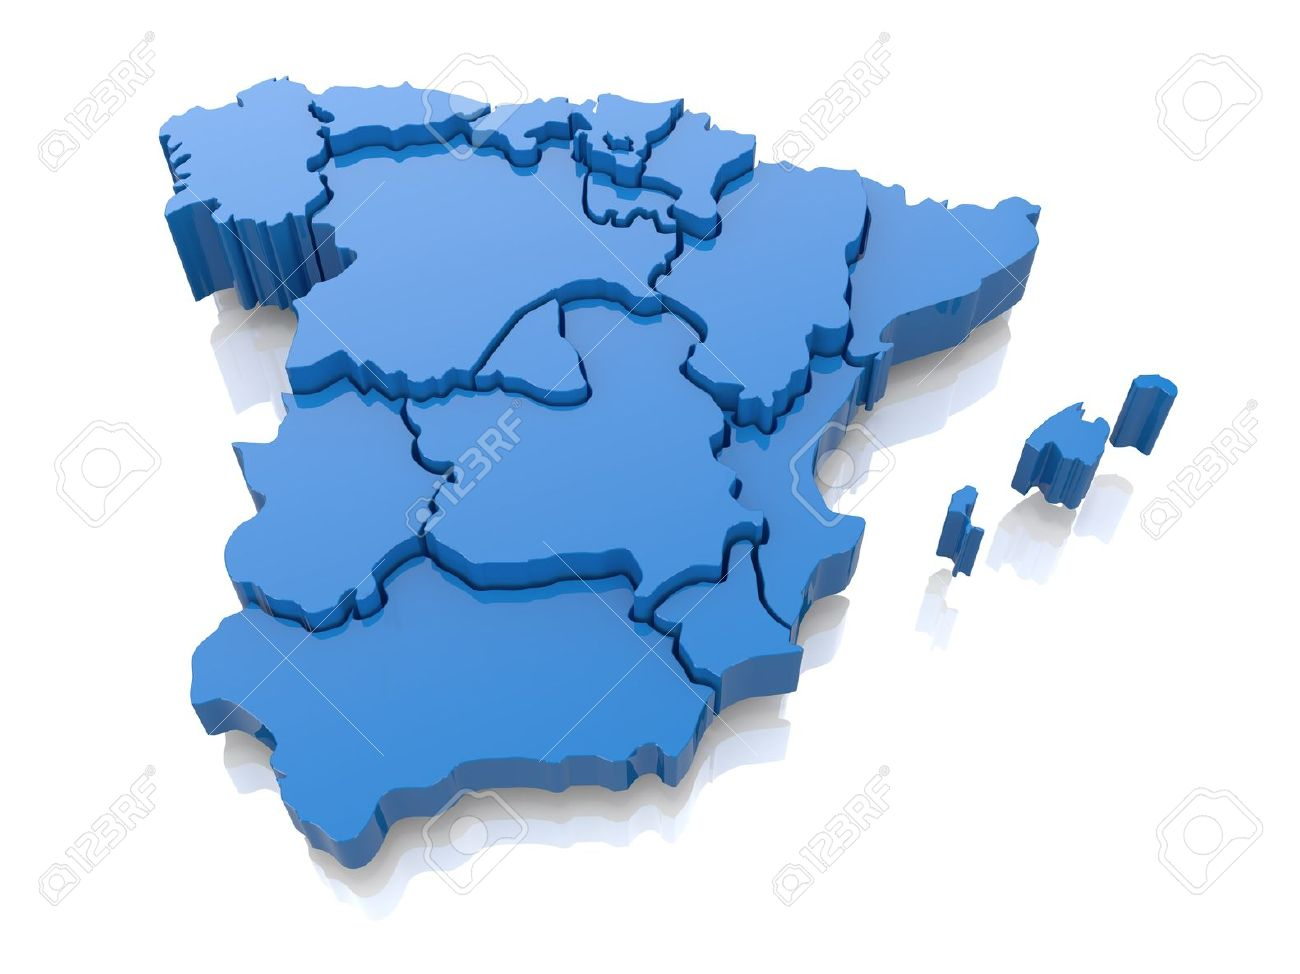 3d Map Of Spain.Three Dimensional Map Of Spain On White Background 3d